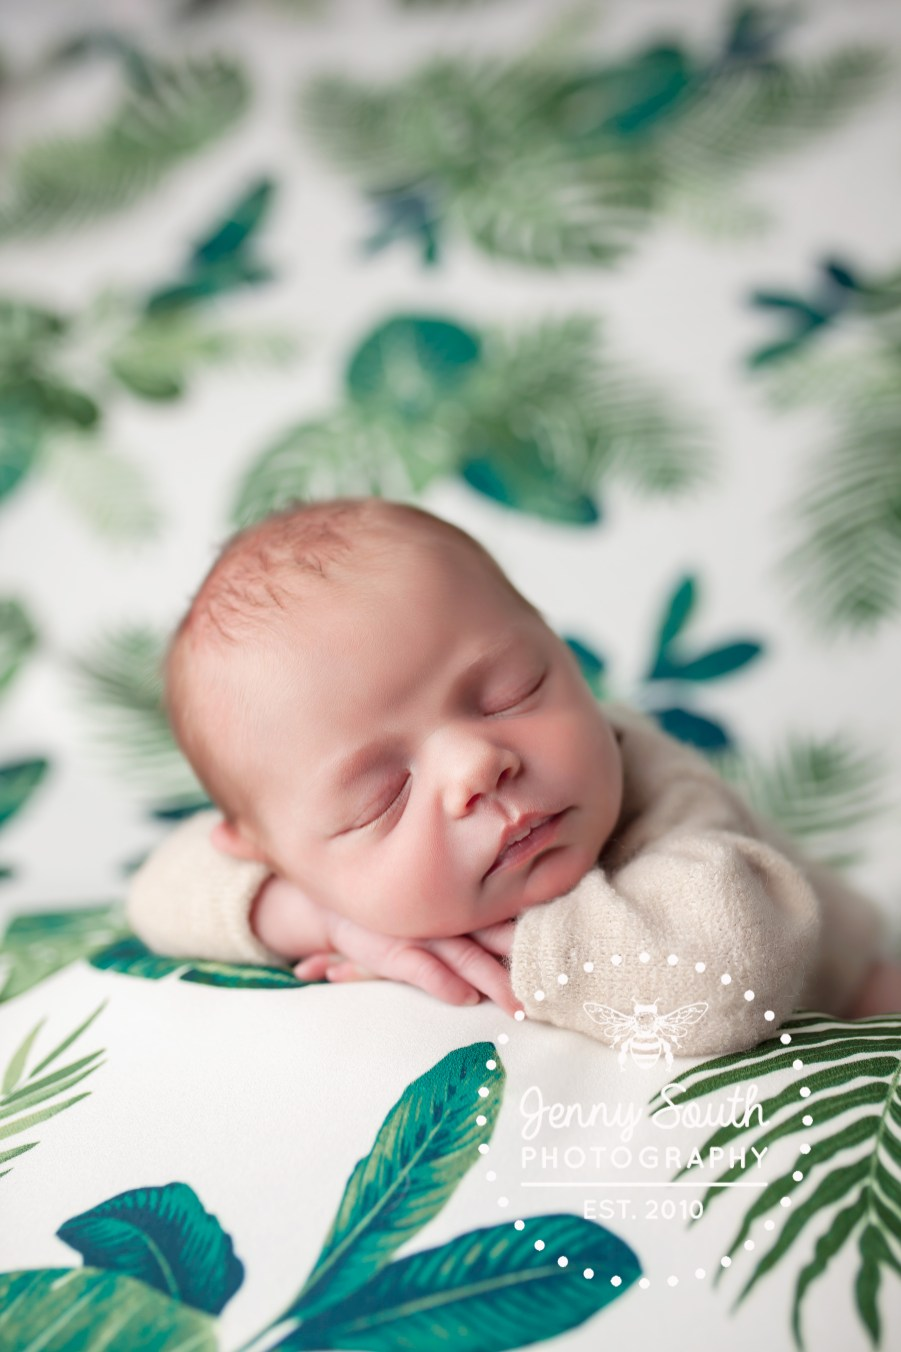 A Newborn lies sleeping on her hands against a botanical green and cream backdrop